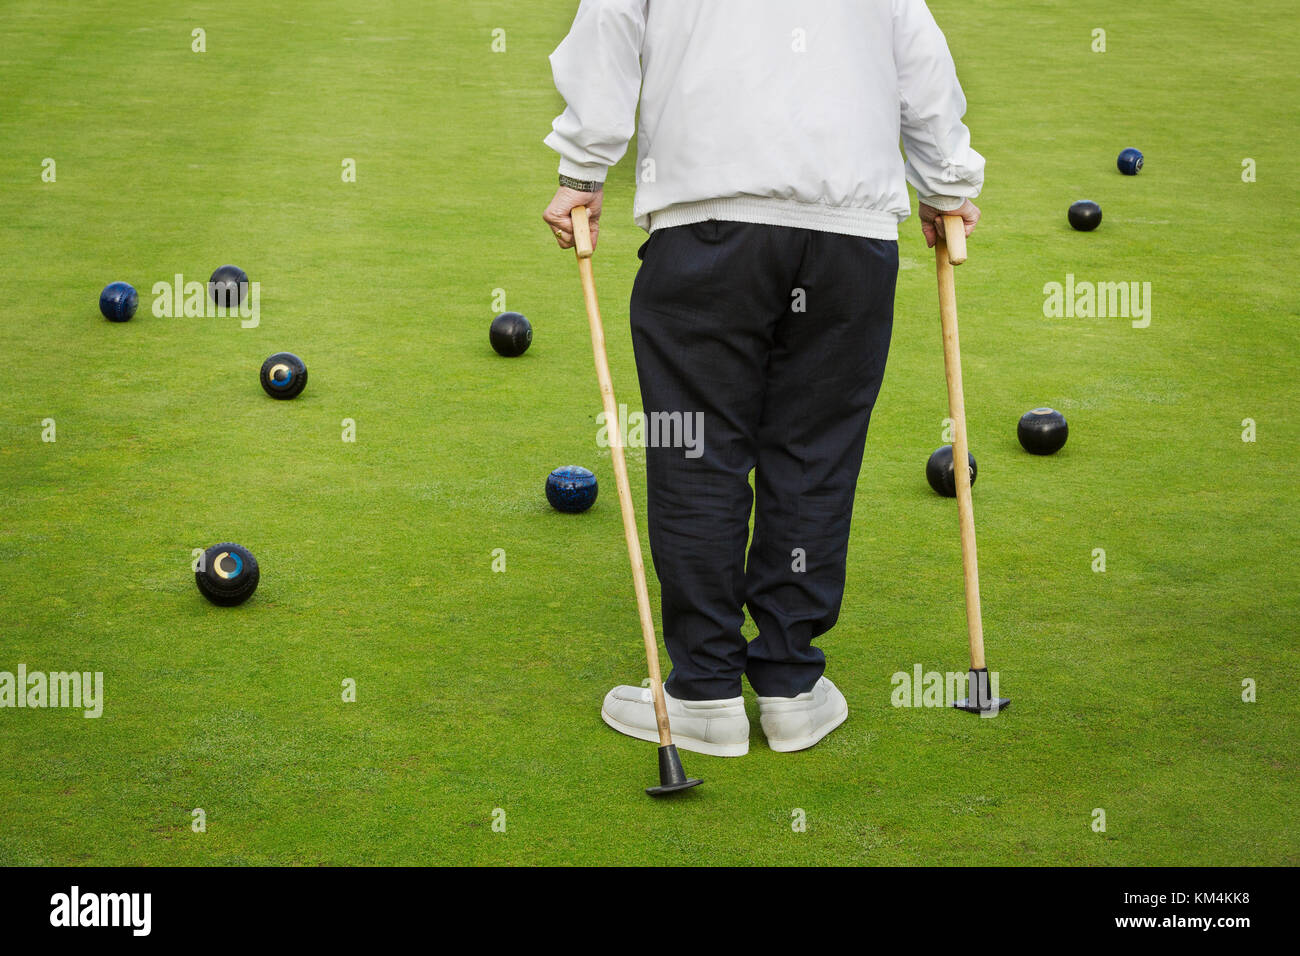 A man with two walking sticks standing on a lawn bowls green, with bowls balls clustered around him. - Stock Image